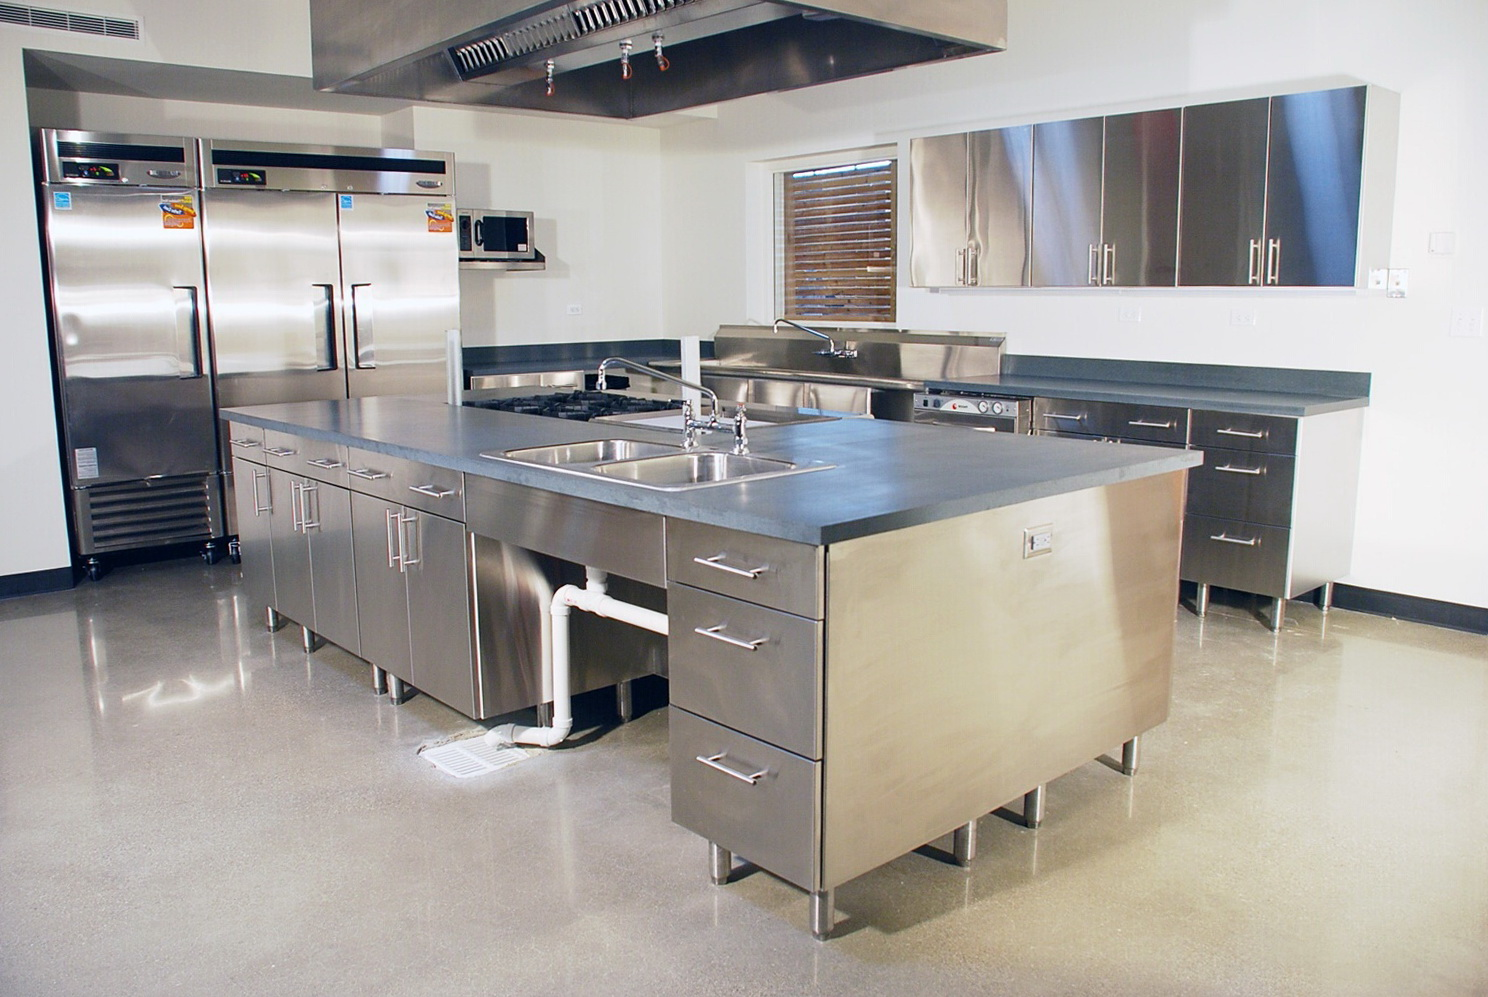 Stainless Steel Kitchen Cabinets Malaysia